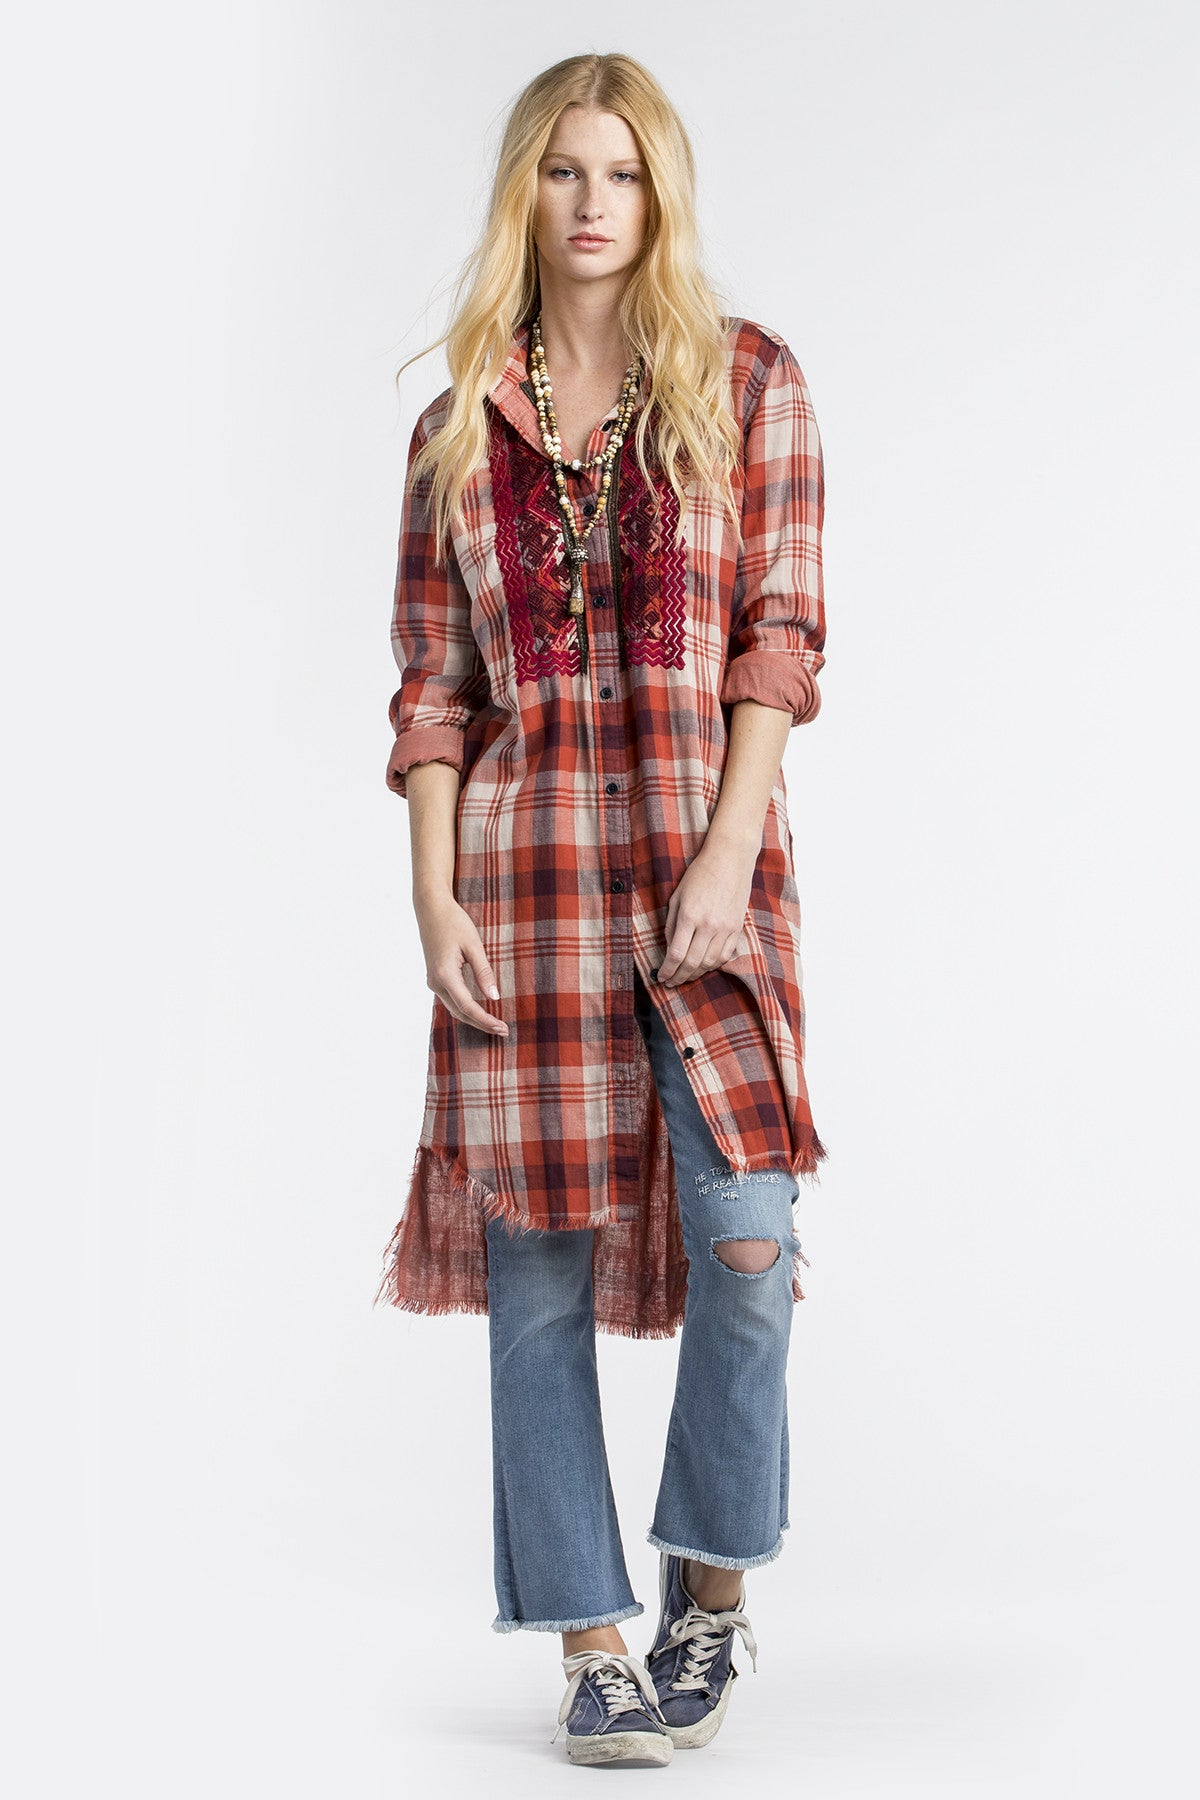 Have It All Shirt Dress